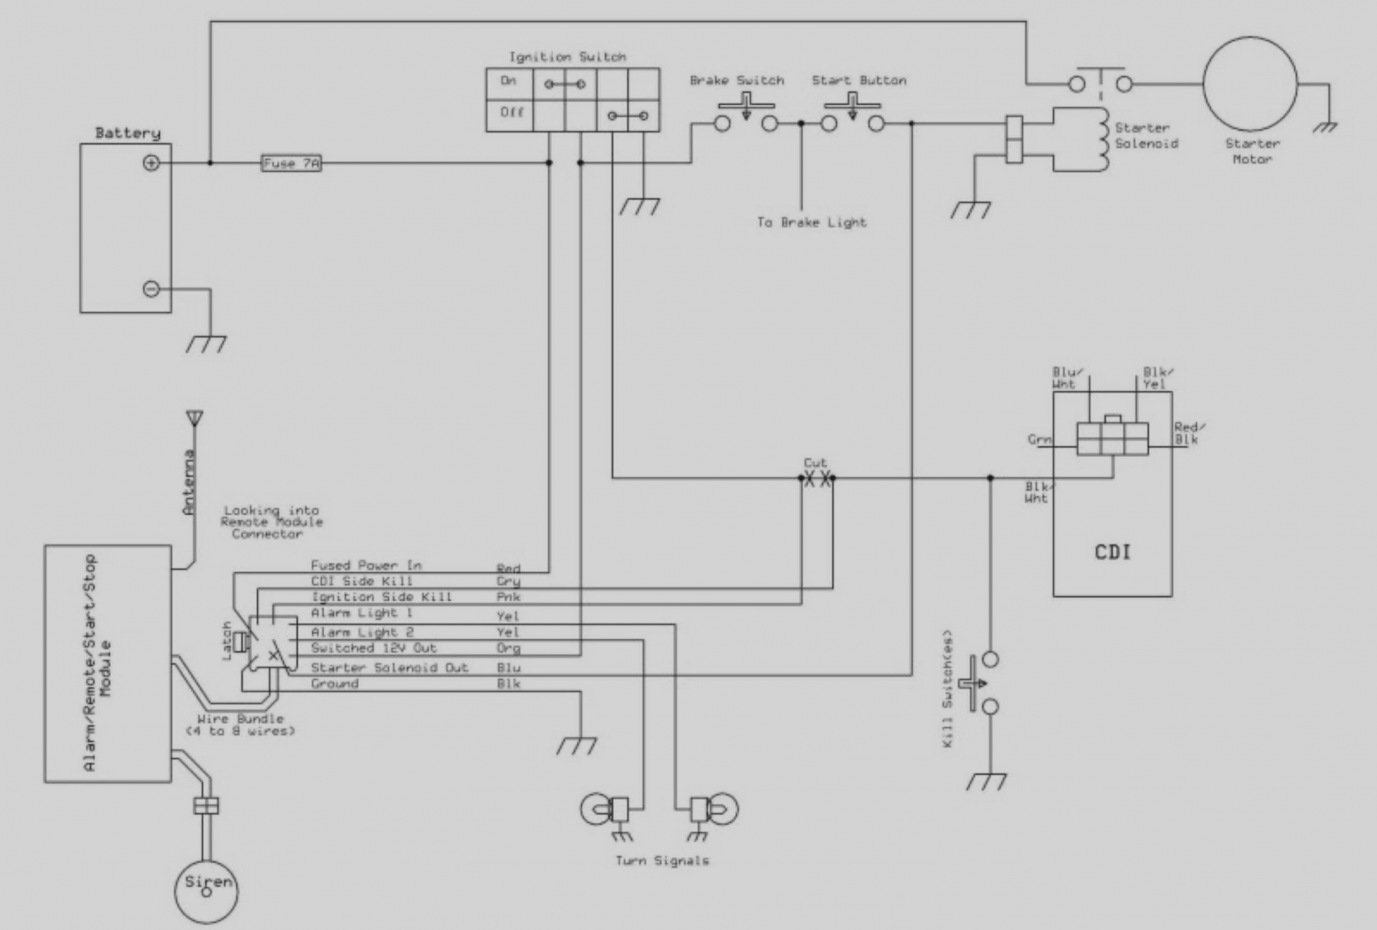 Atv Starter Wiring Diagram | Wiring Diagram - Atv Starter Solenoid Wiring Diagram